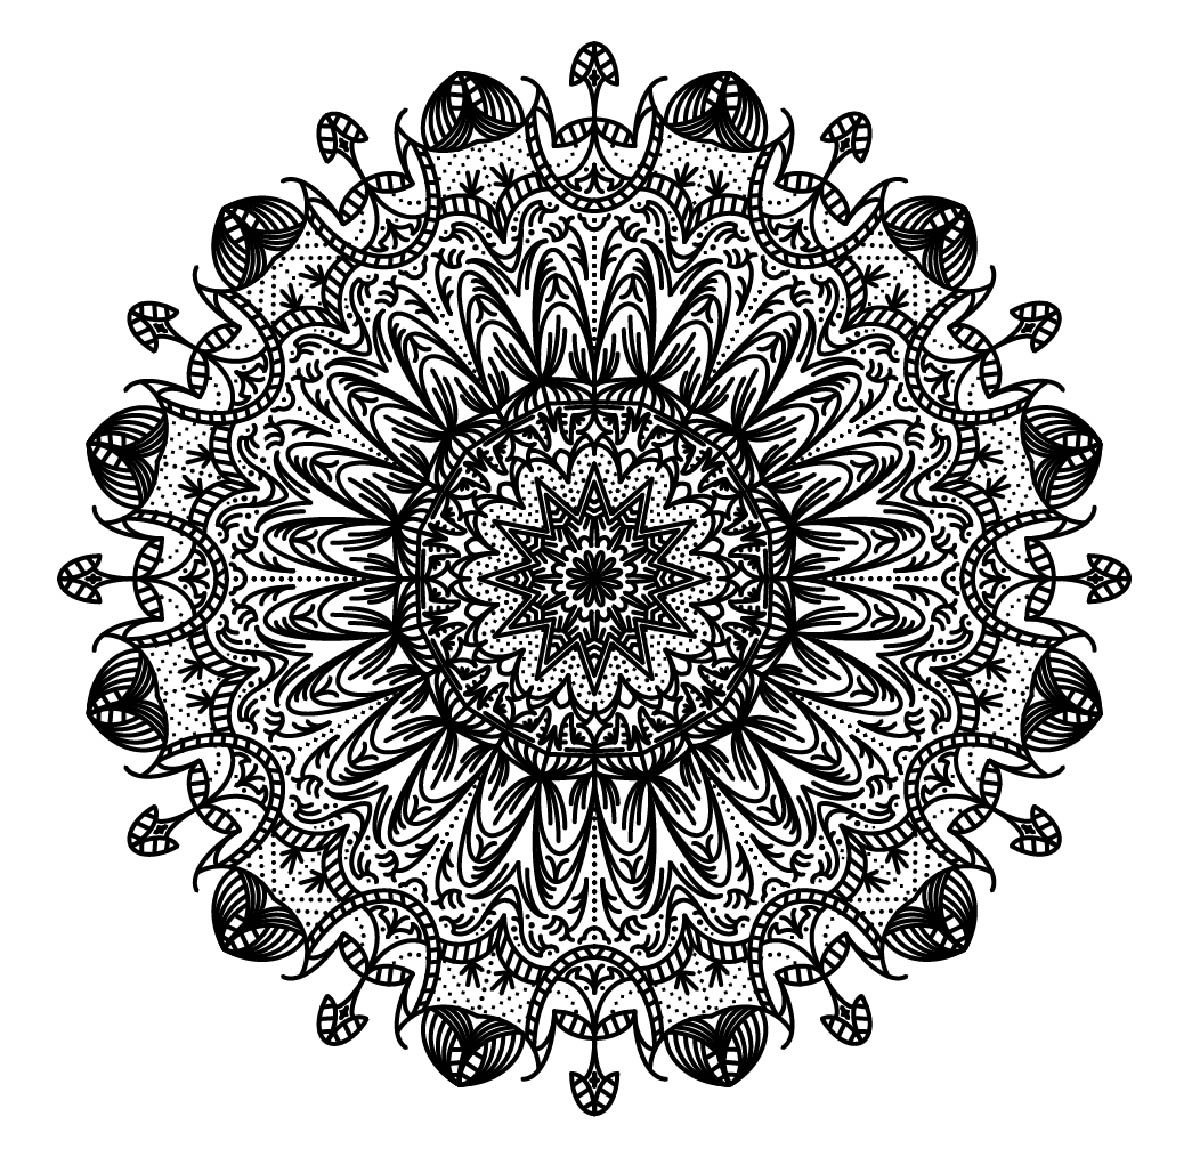 Hard mandala coloring pages for adults - Mandala To Download Difficult Free To Print